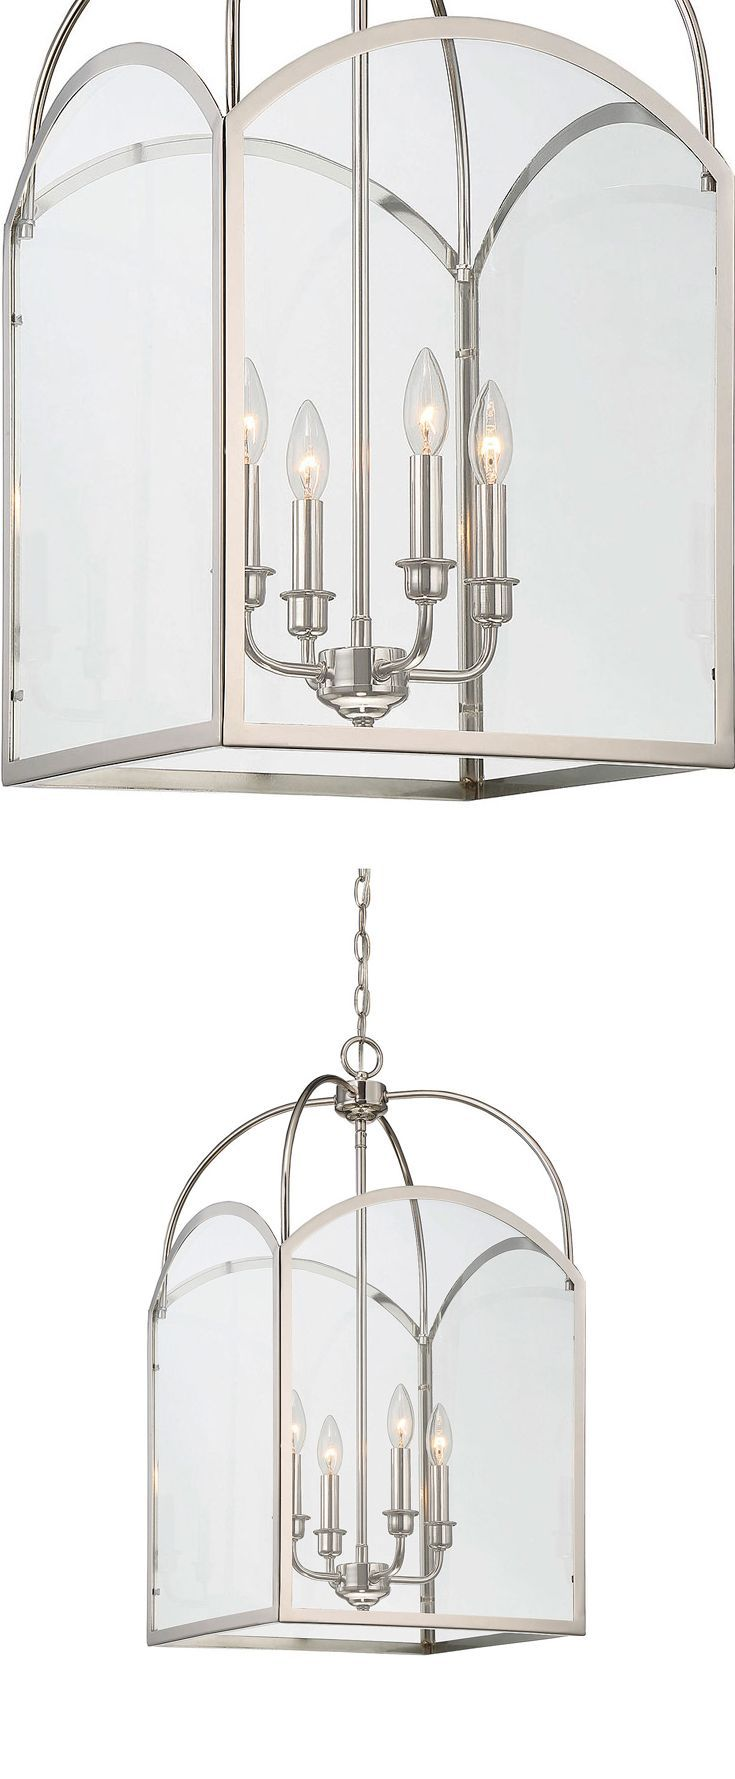 66 best Candle and Lantern Ideas images on Pinterest | Antique ...